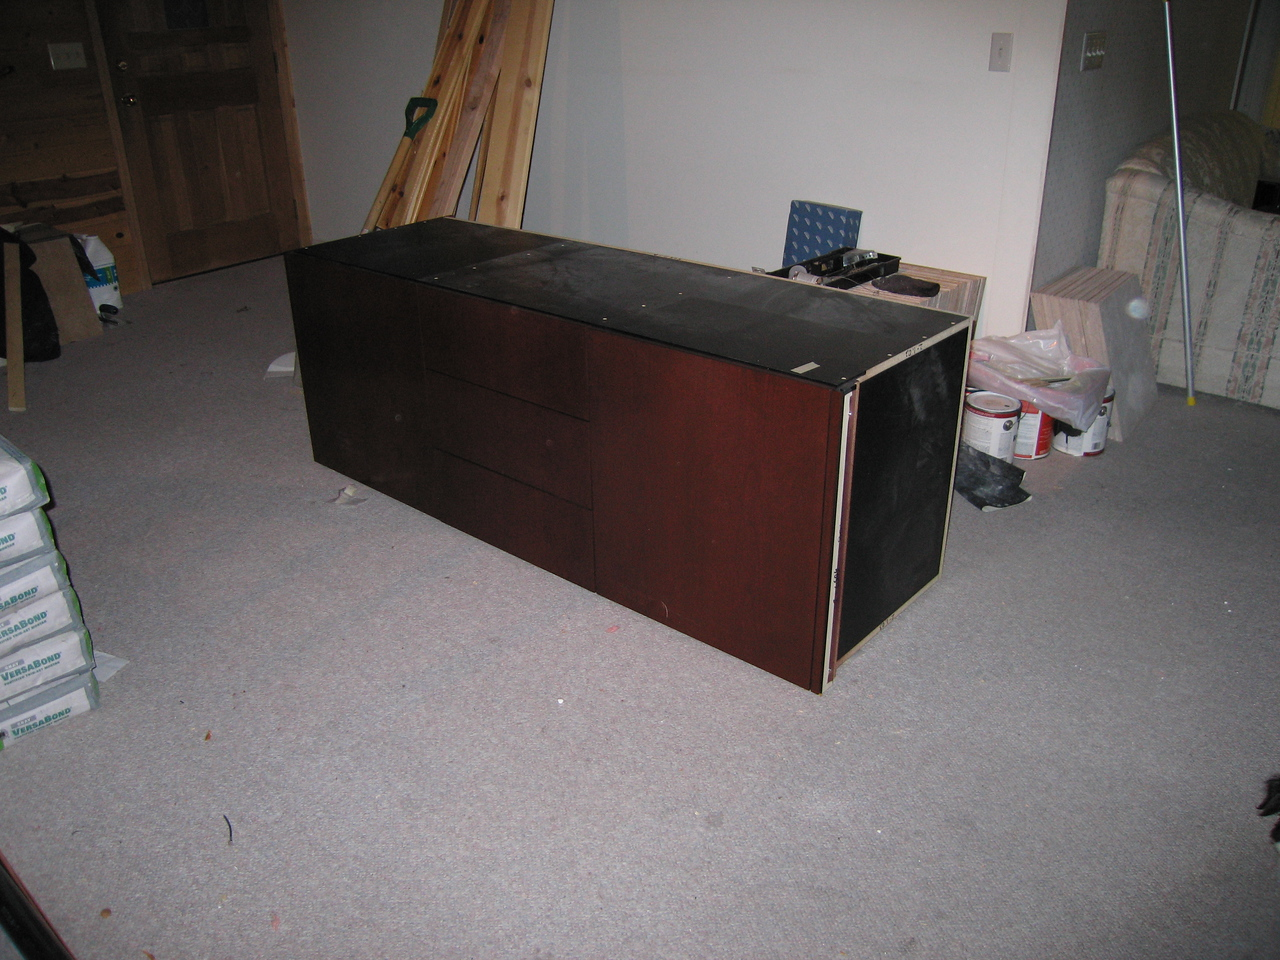 April 14, 2005 - I picked up the vanity base for the bathroom.  Scott came over to help us unload it.